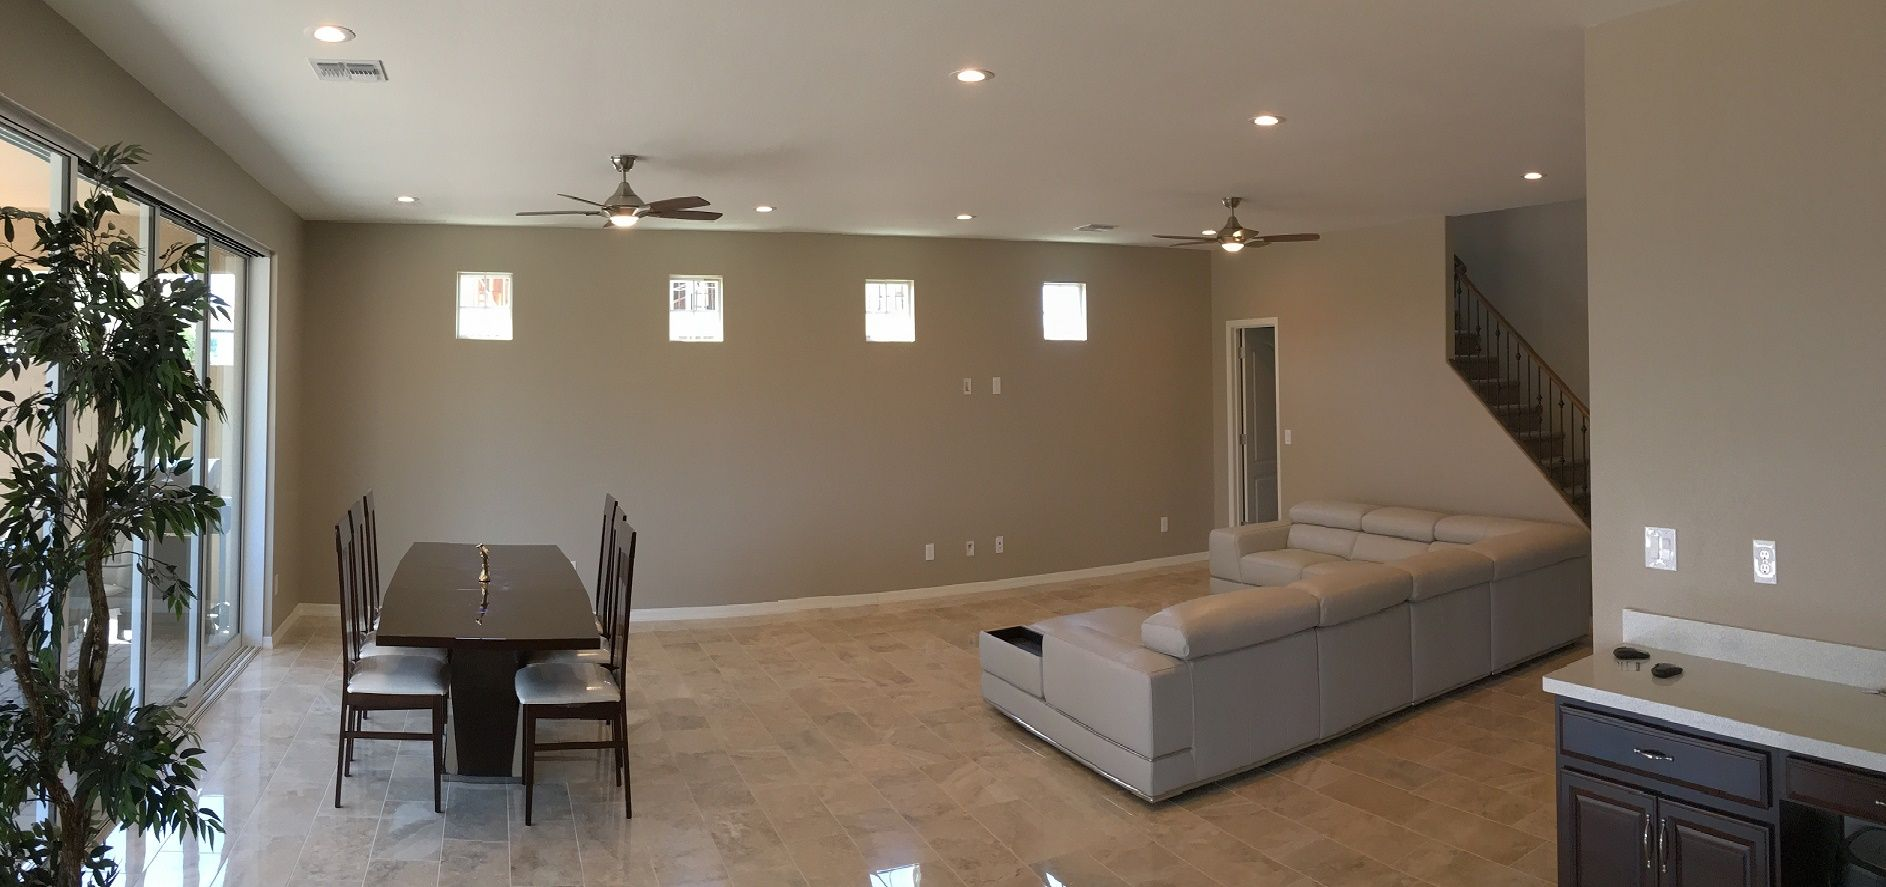 AZ Recessed Lighting installation of LED lights and ceiling fans. AZ ...